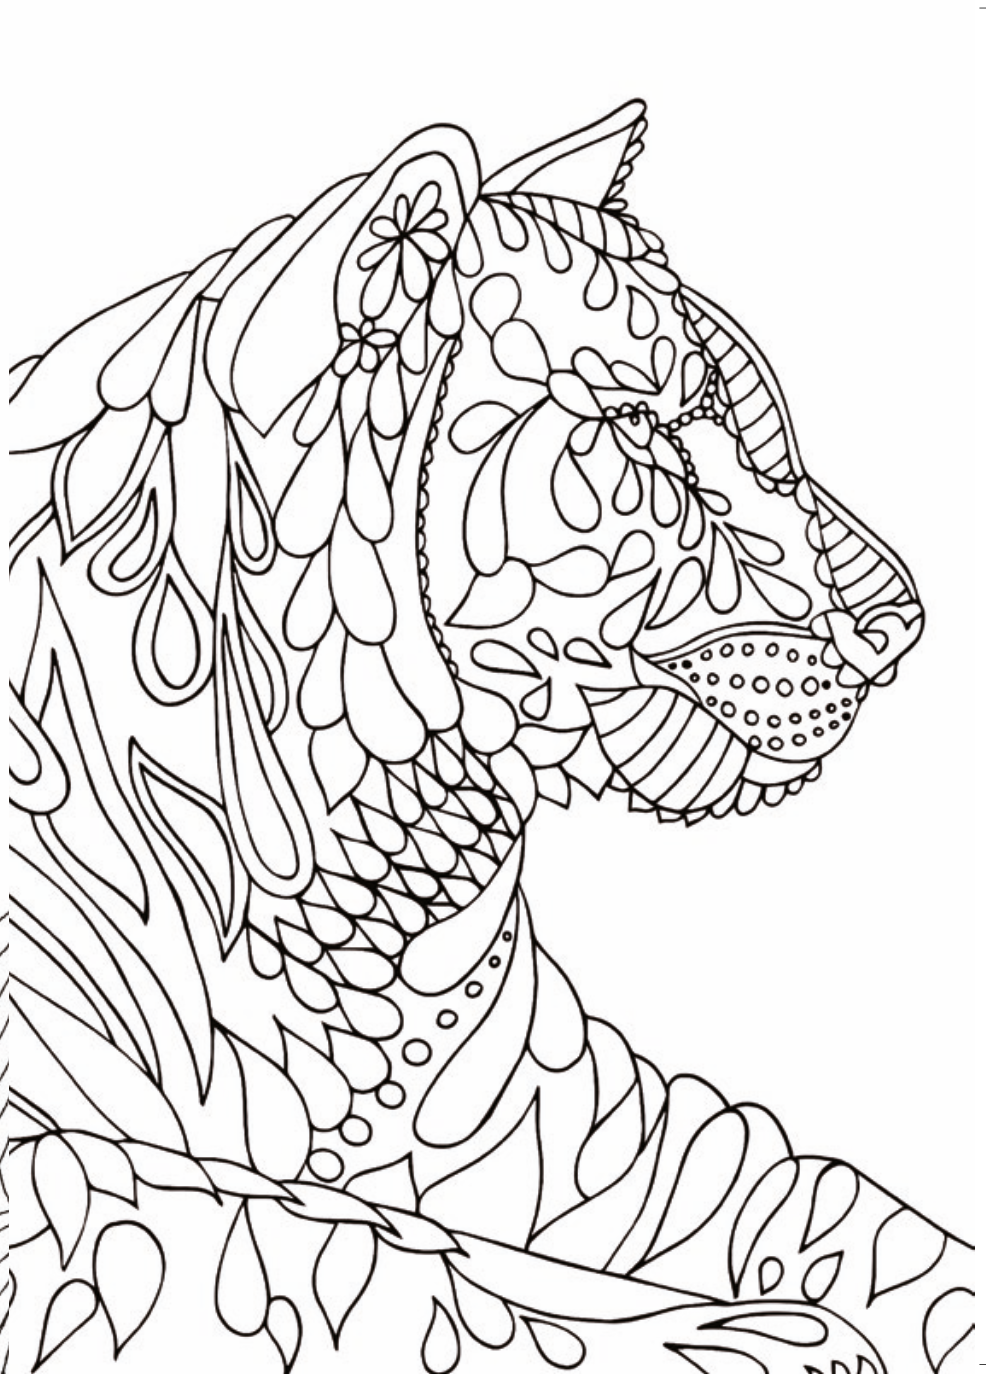 986x1376 Downloadable Colouring Pages For Relieving Stress And Anxiety